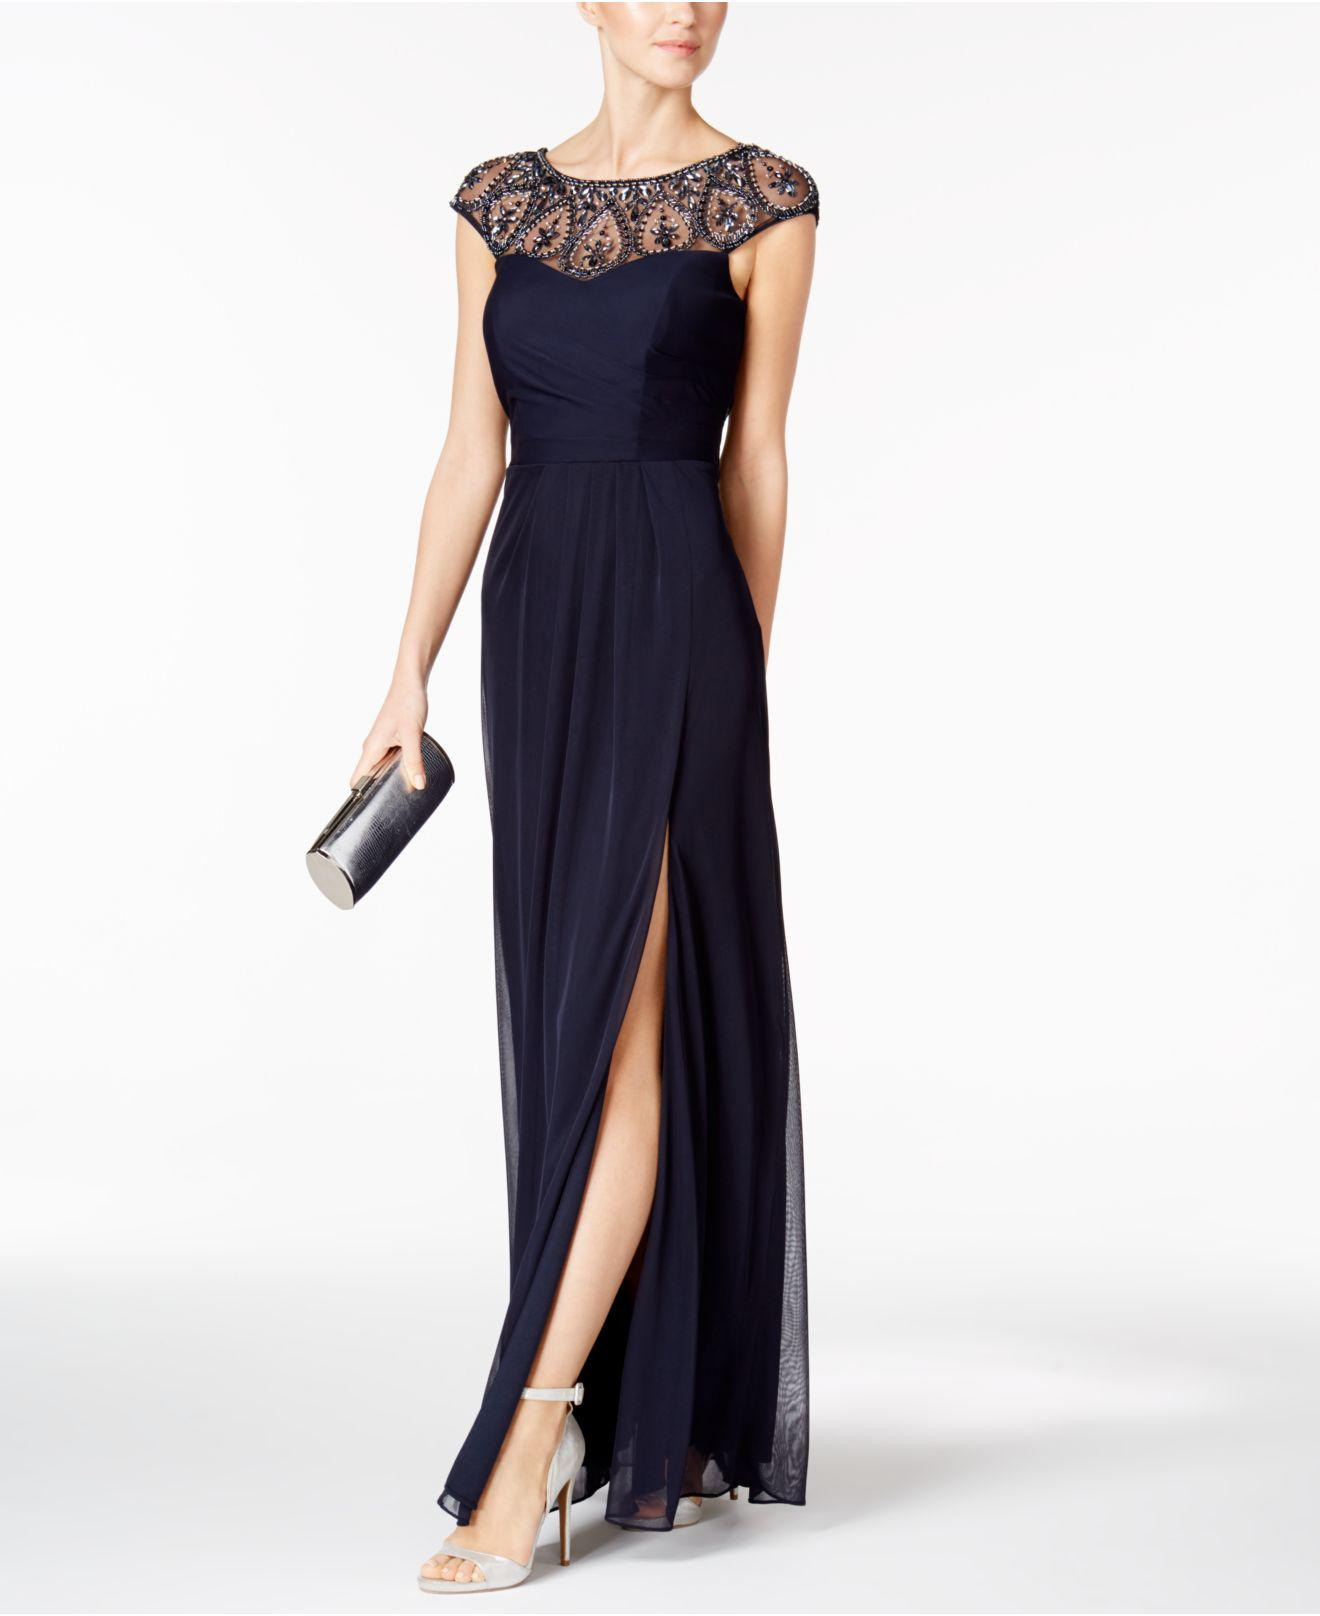 Lyst - Xscape Embellished Faux-wrap Gown in Blue